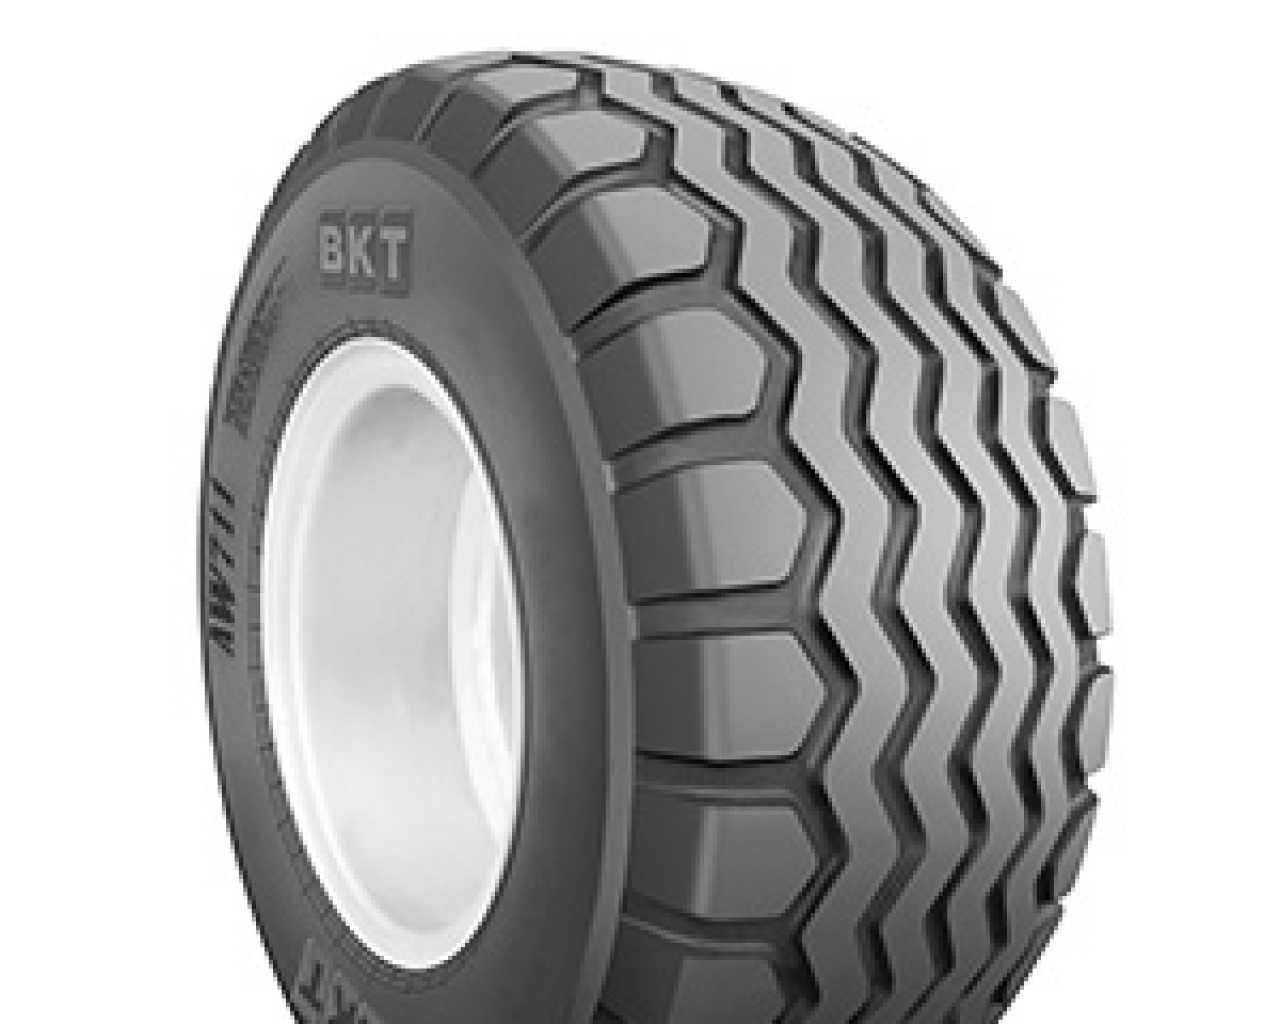 380/55R16.5 BKT AW-711 TL - Buy online at Agrigear, Ireland's tyre and wheel specialists